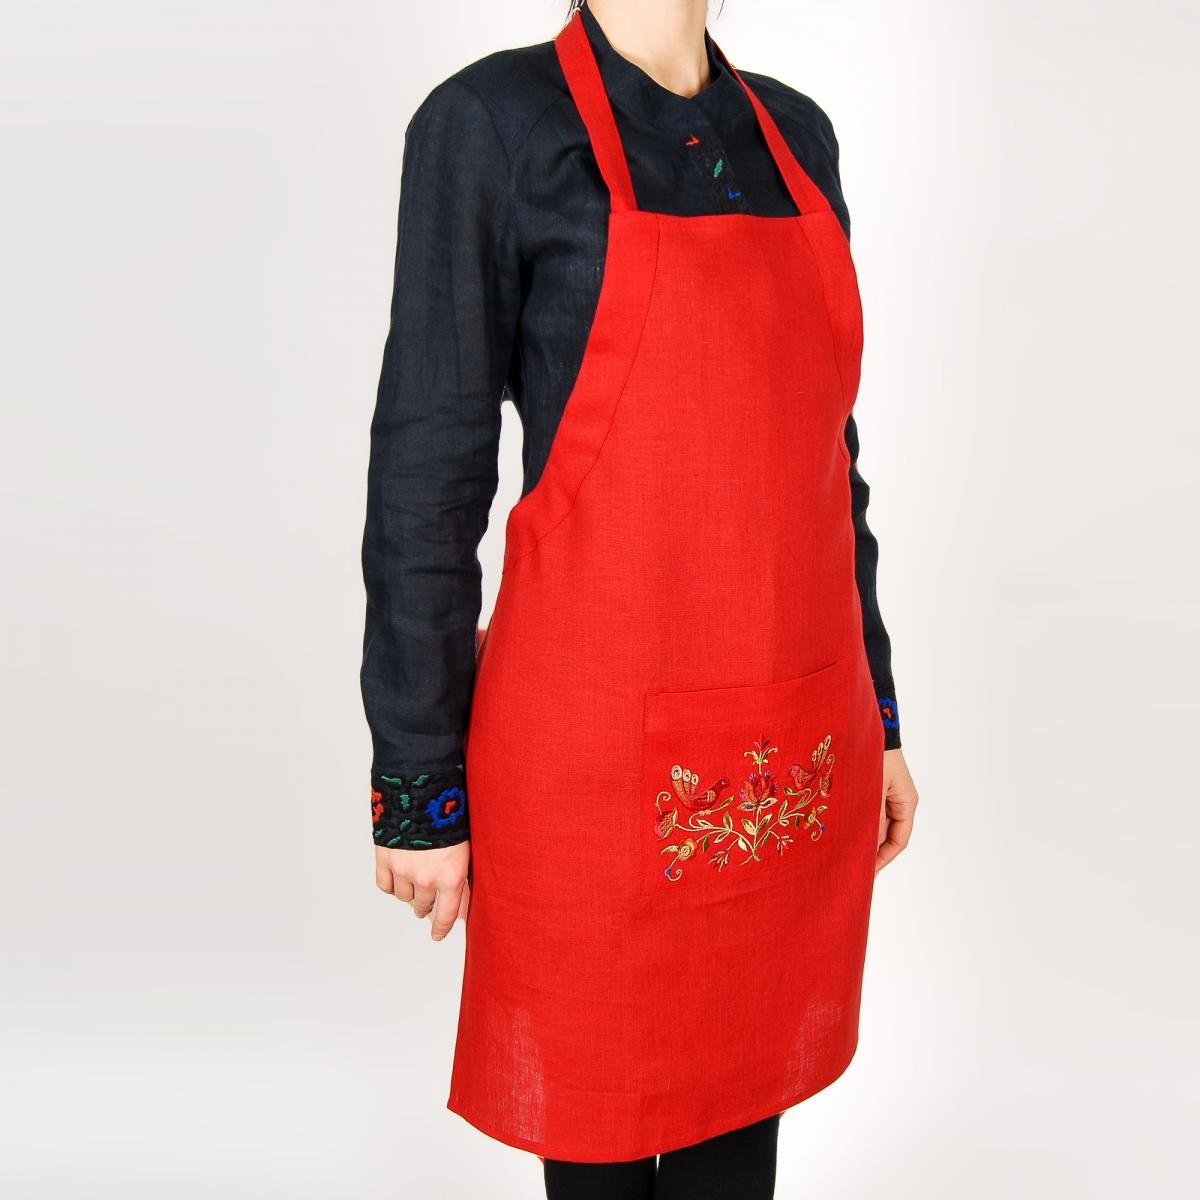 Apron for your kitchen with embroidery. Photo №1. | Narodnyi dim Ukraine